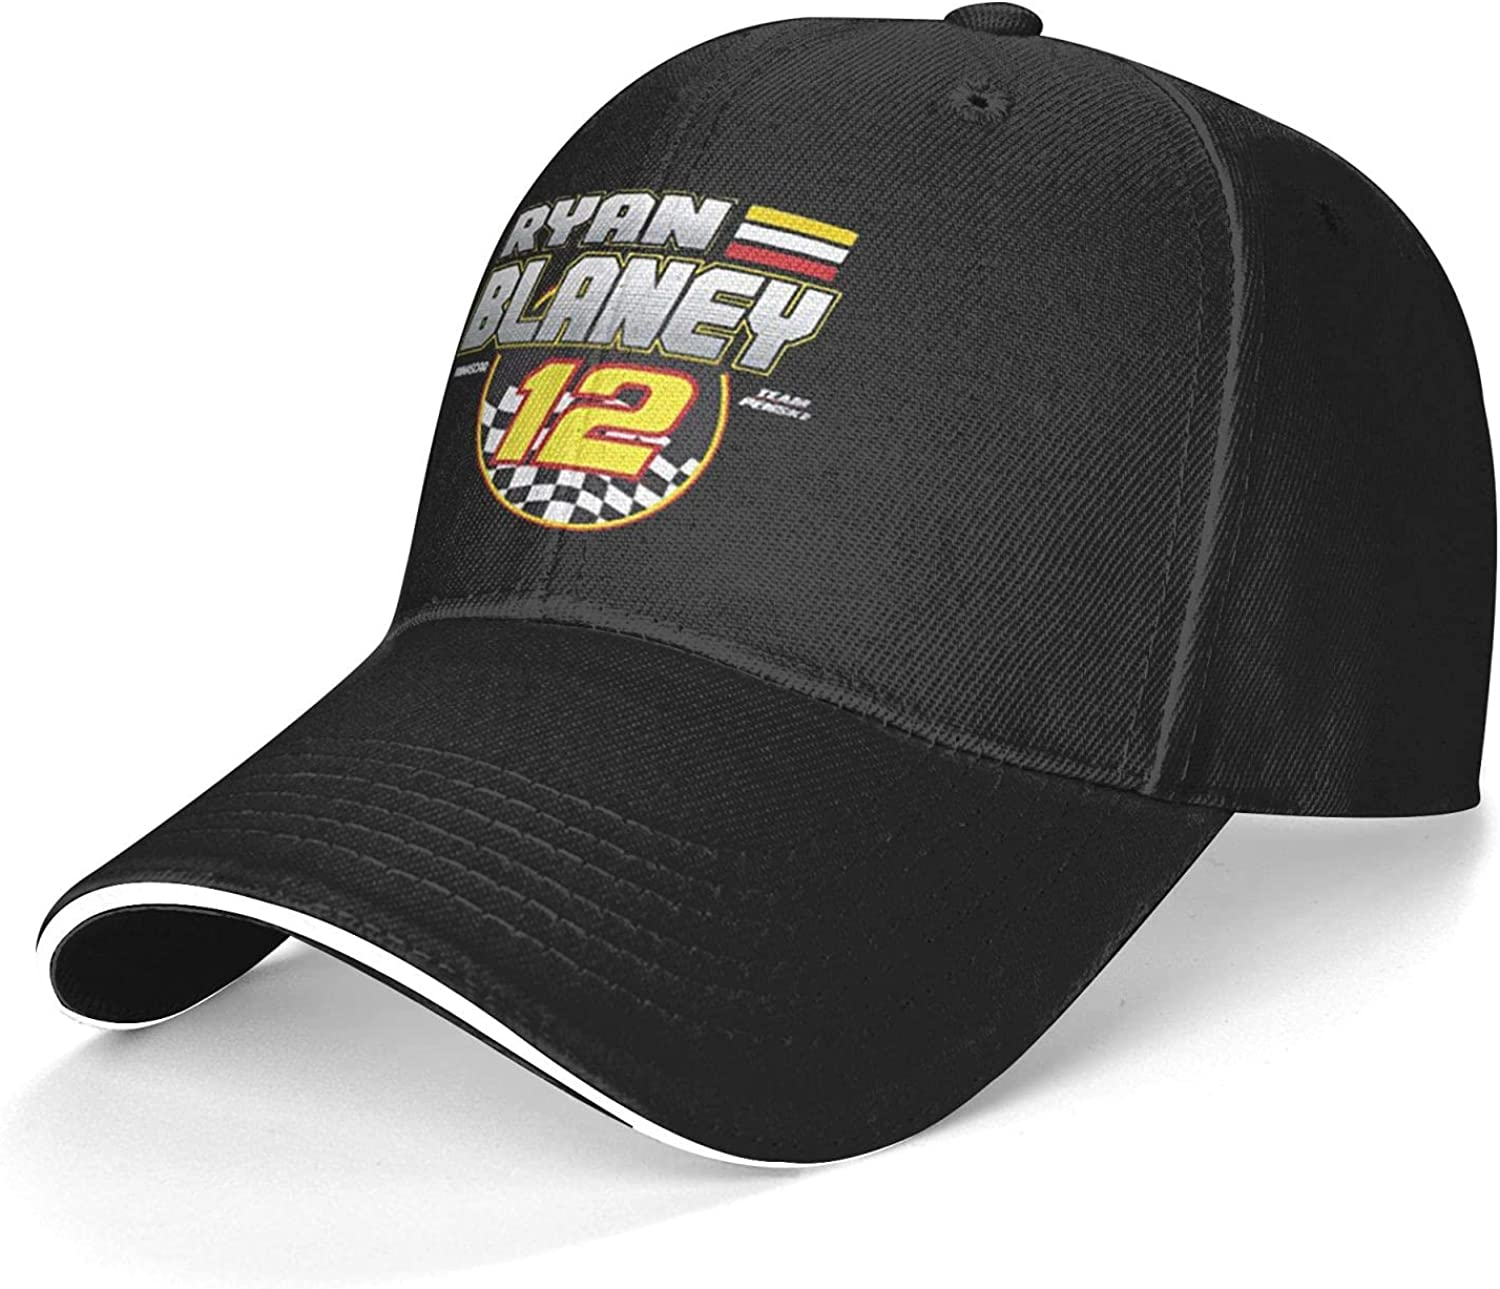 Ryan Blaney Dad Hat Breathable Quick-Drying Top Hat Baseball Cap Black